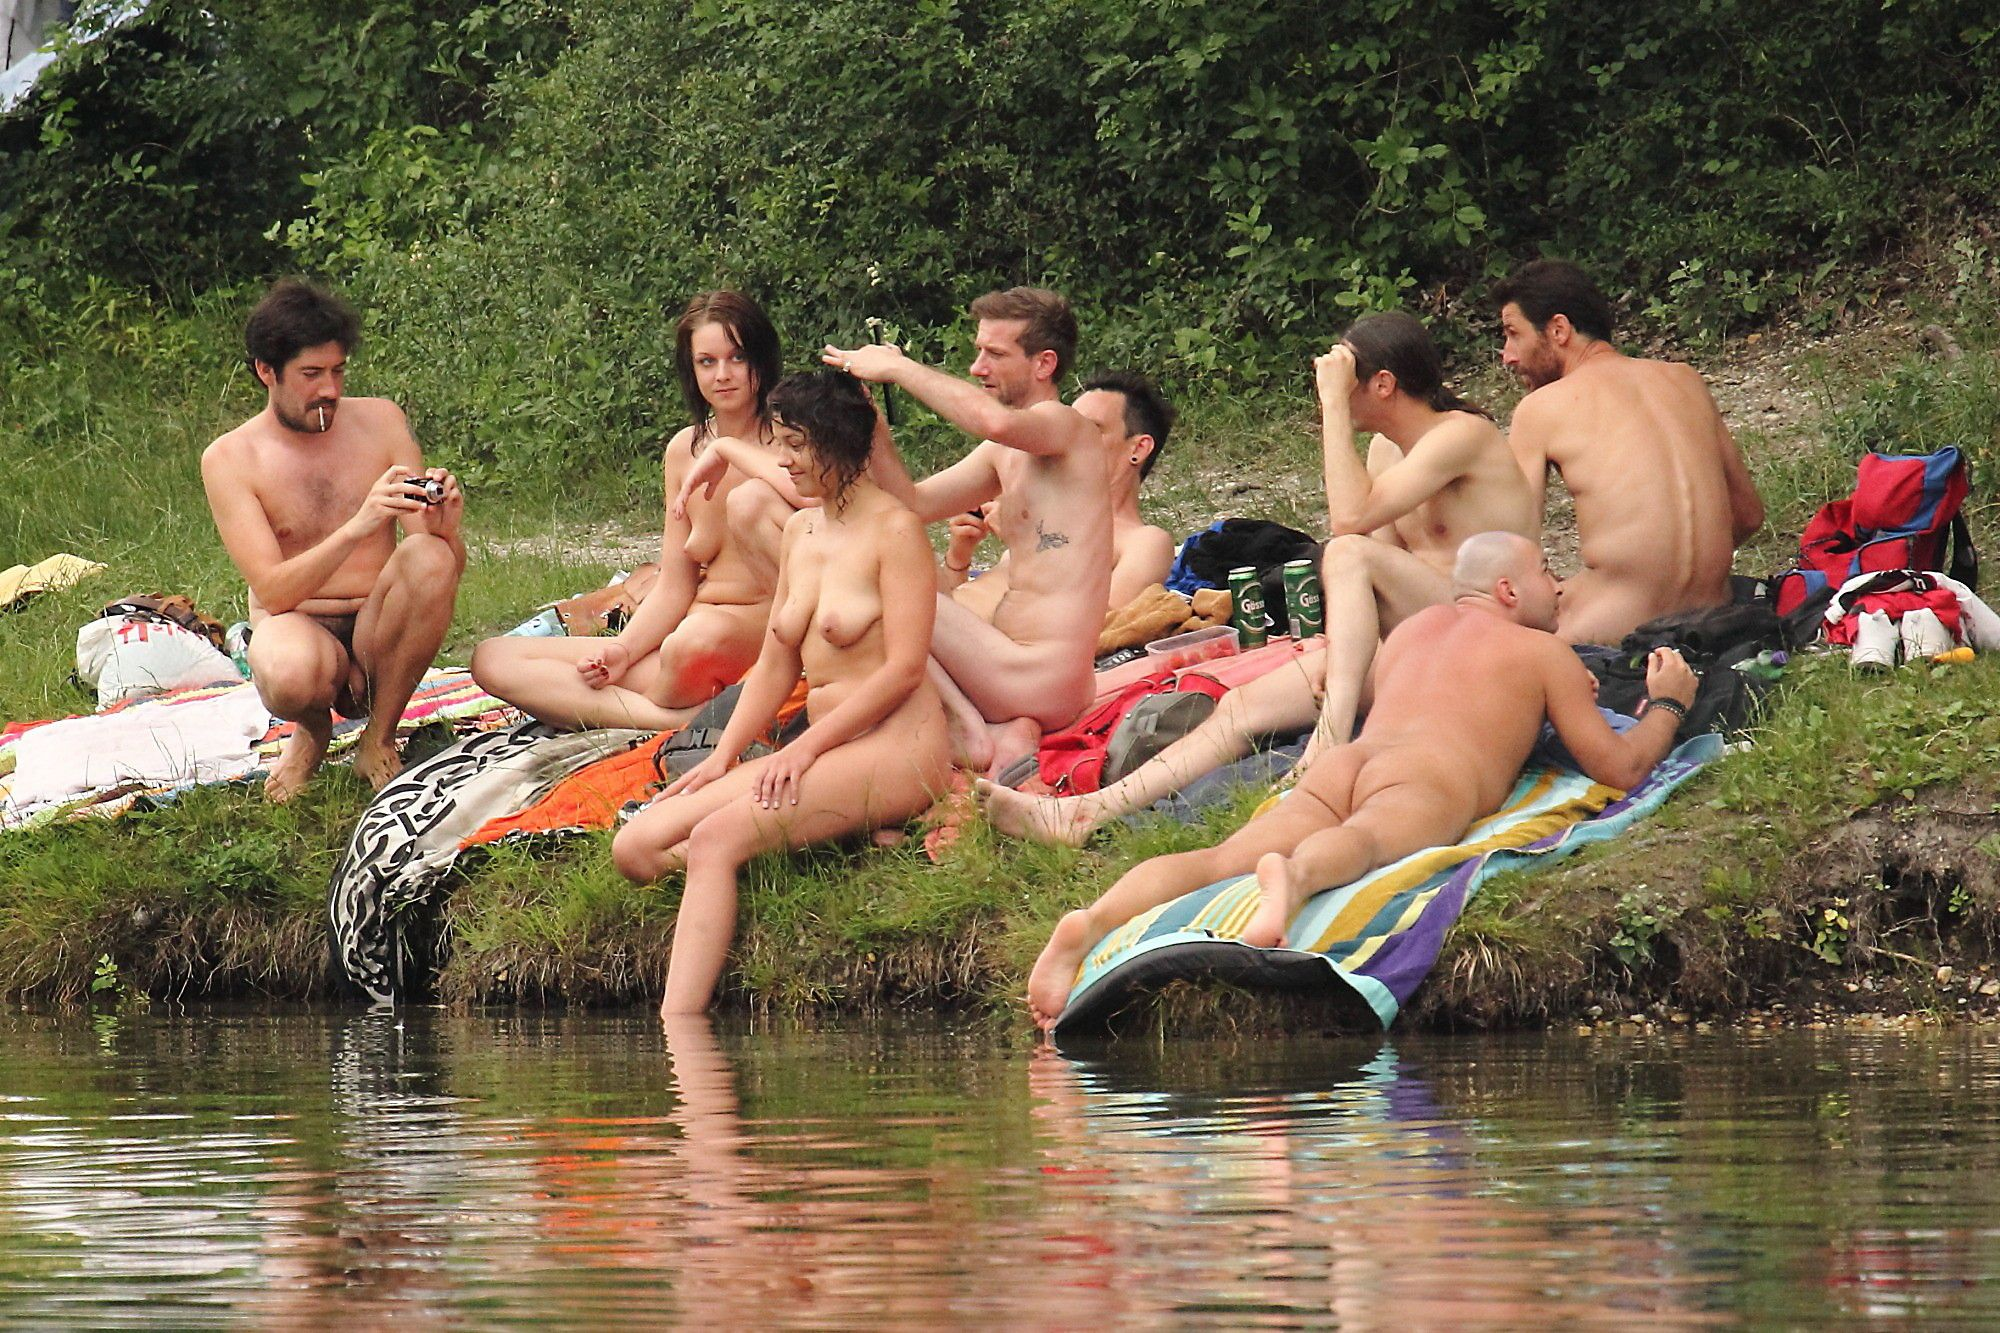 swiss nudist camp pictures